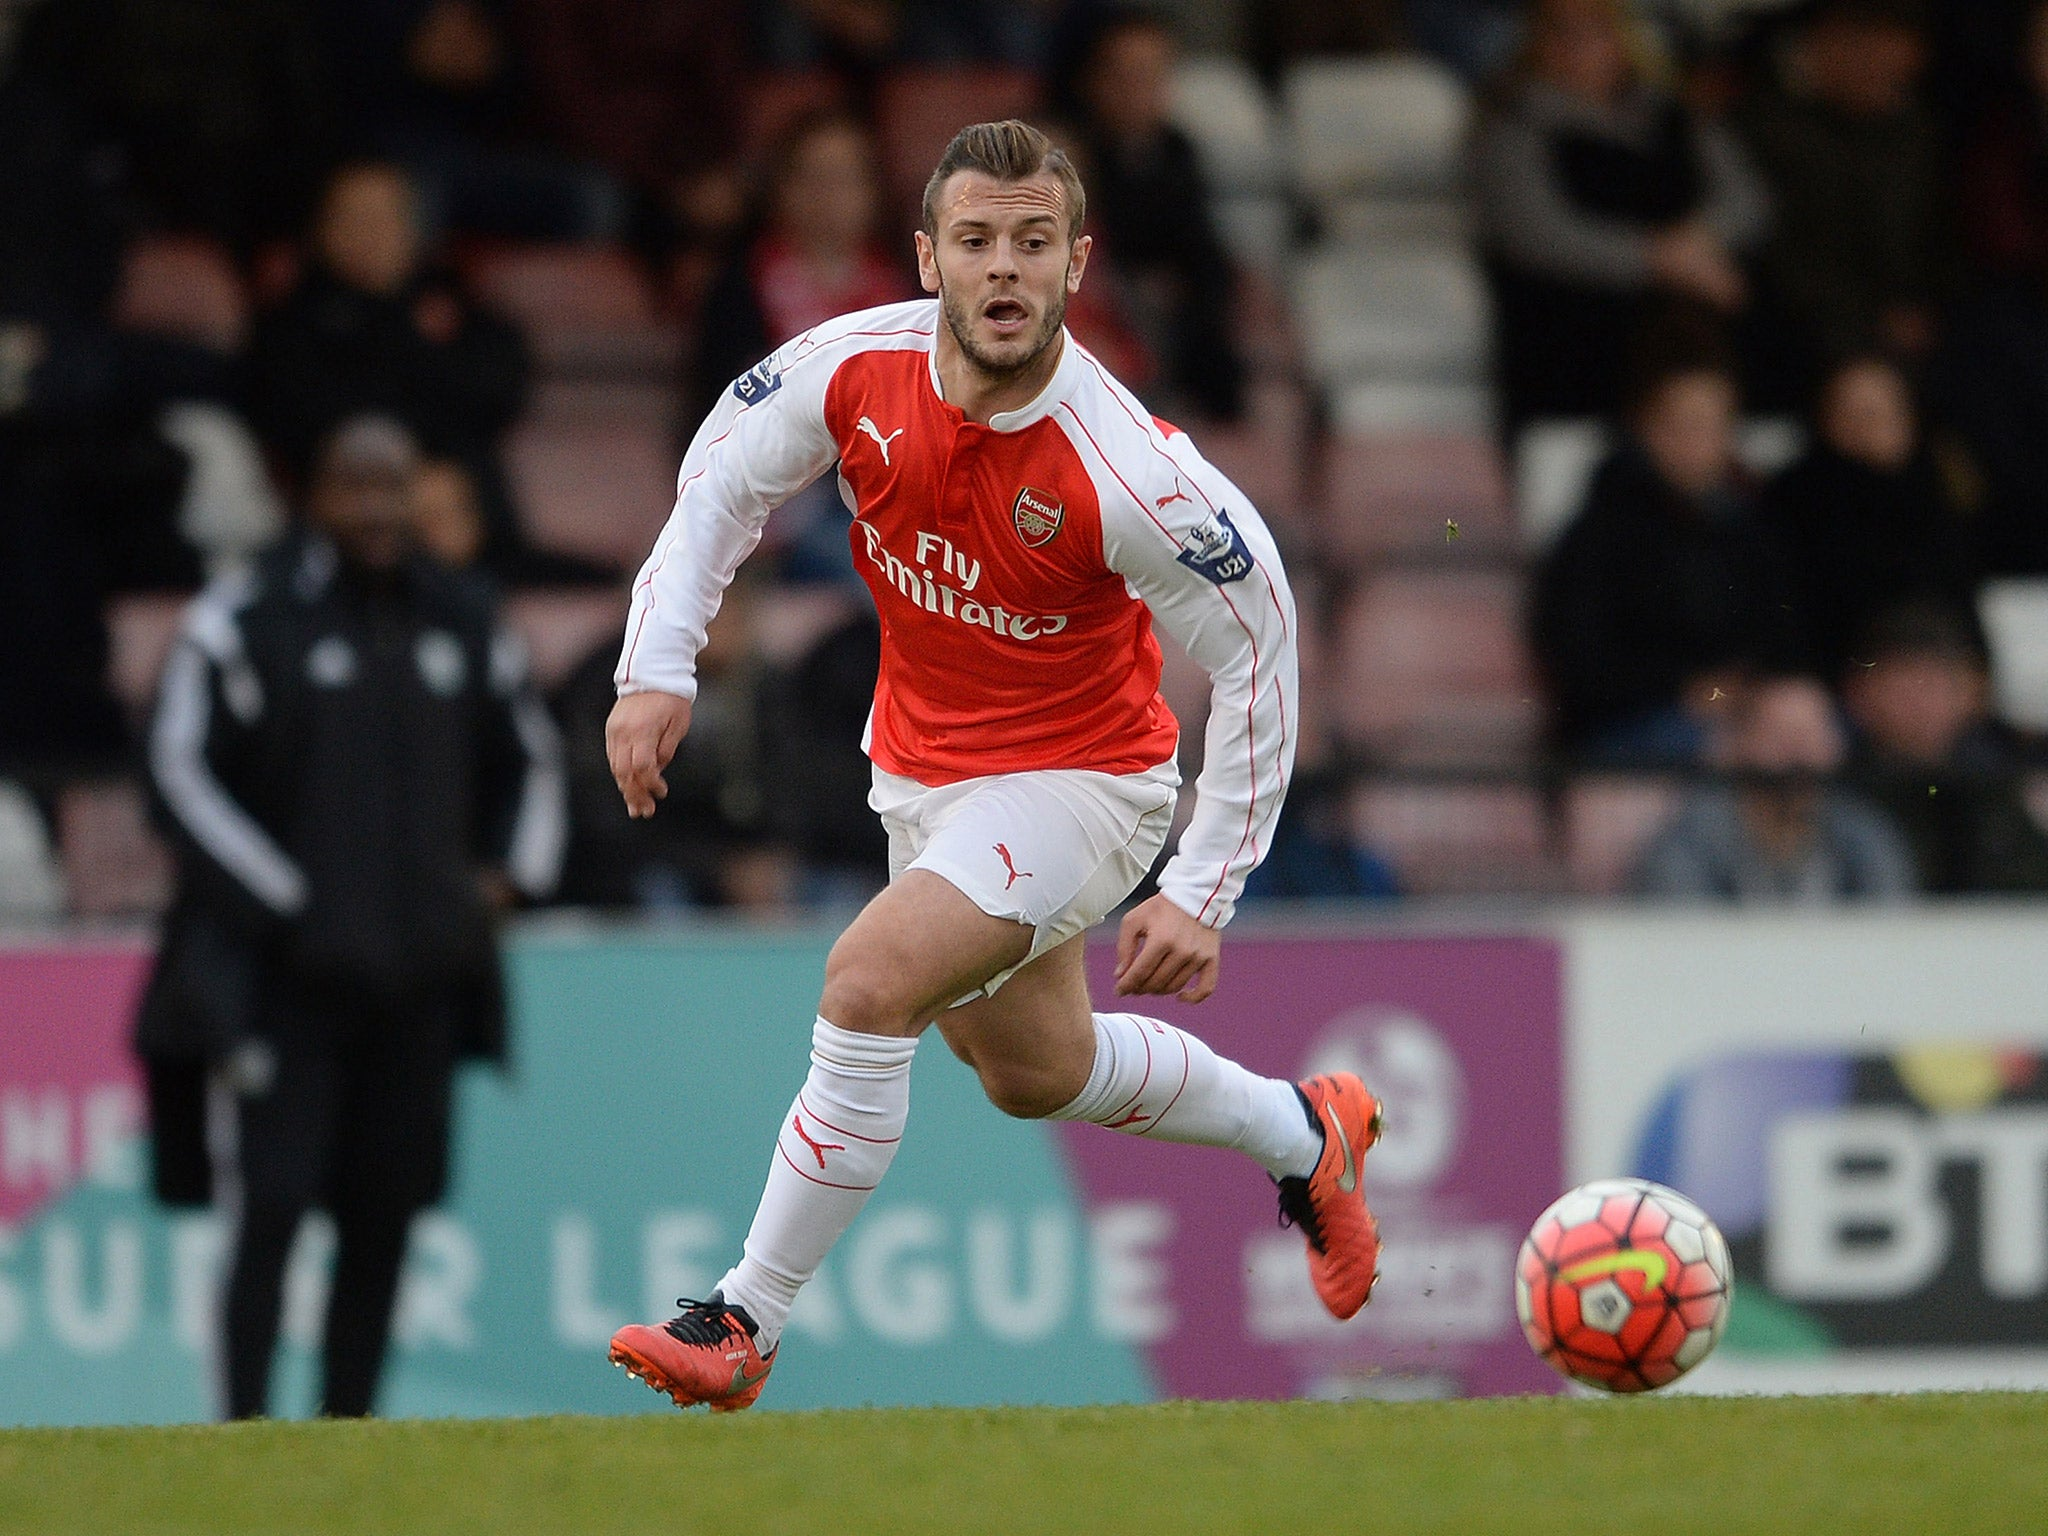 Sunderland vs Arsenal teams: Jack Wilshere poised to make first appearance of the season